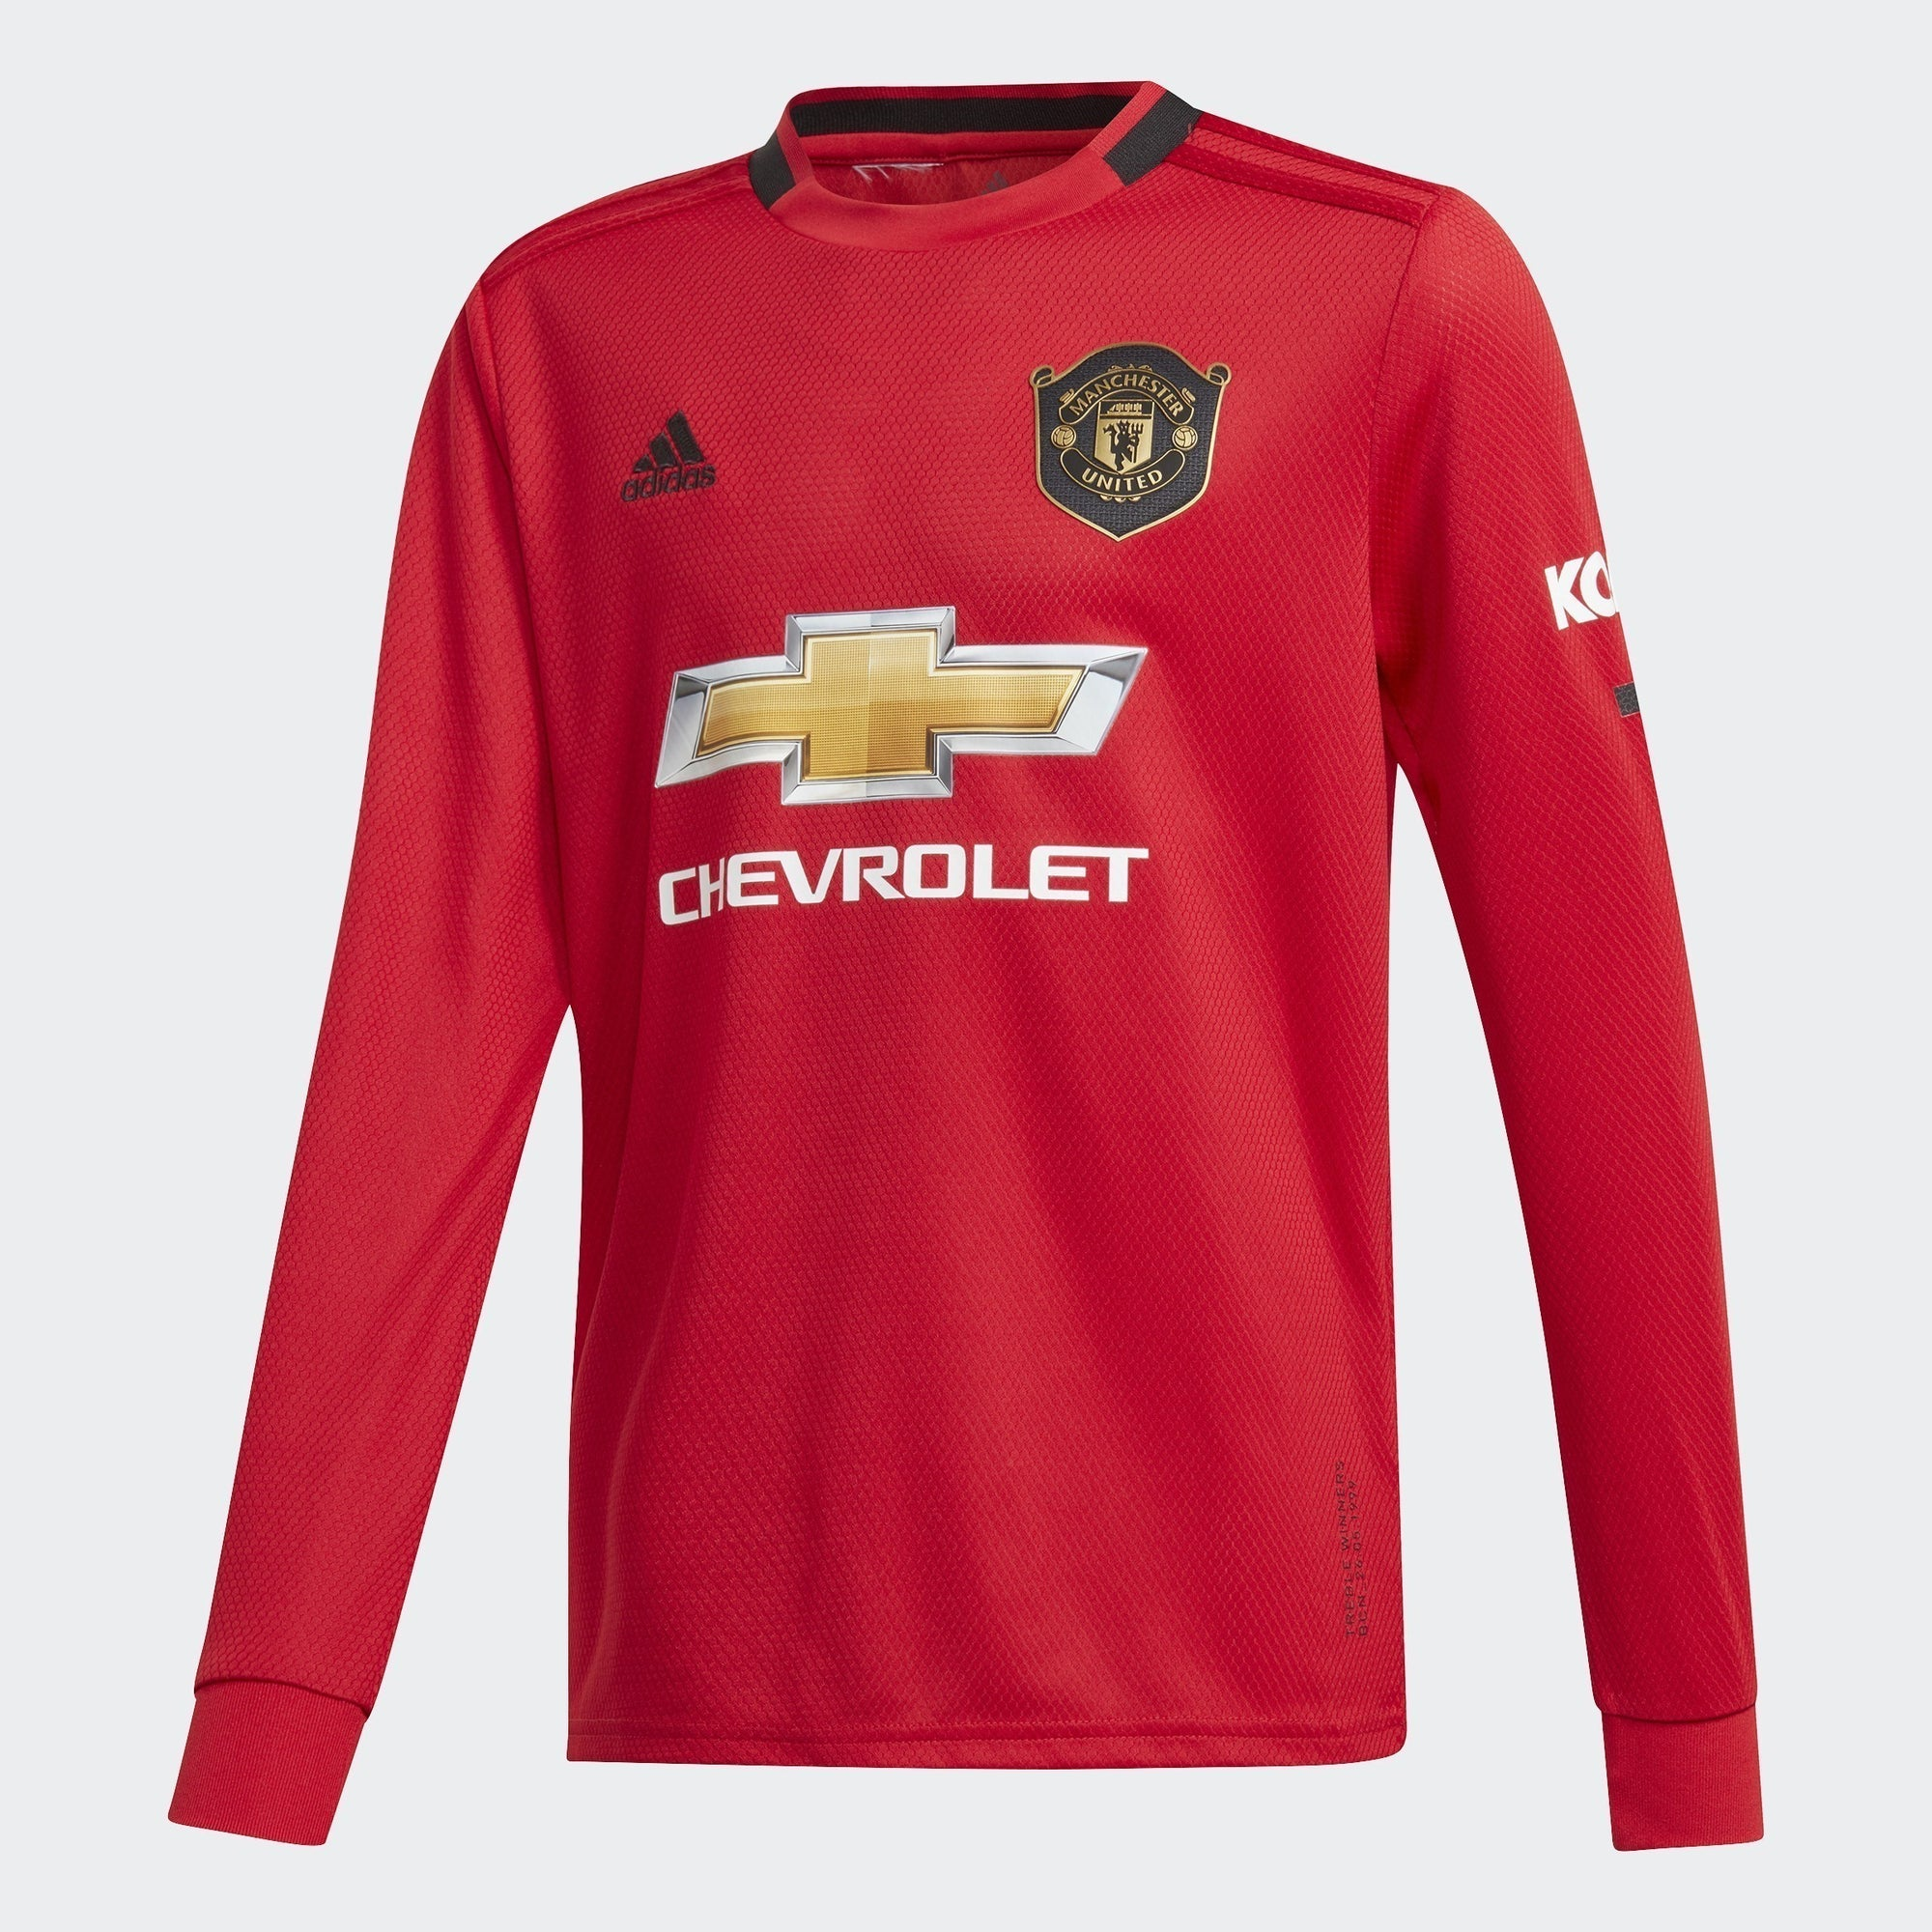 Kid's Manchester United Home Jersey - Real Red